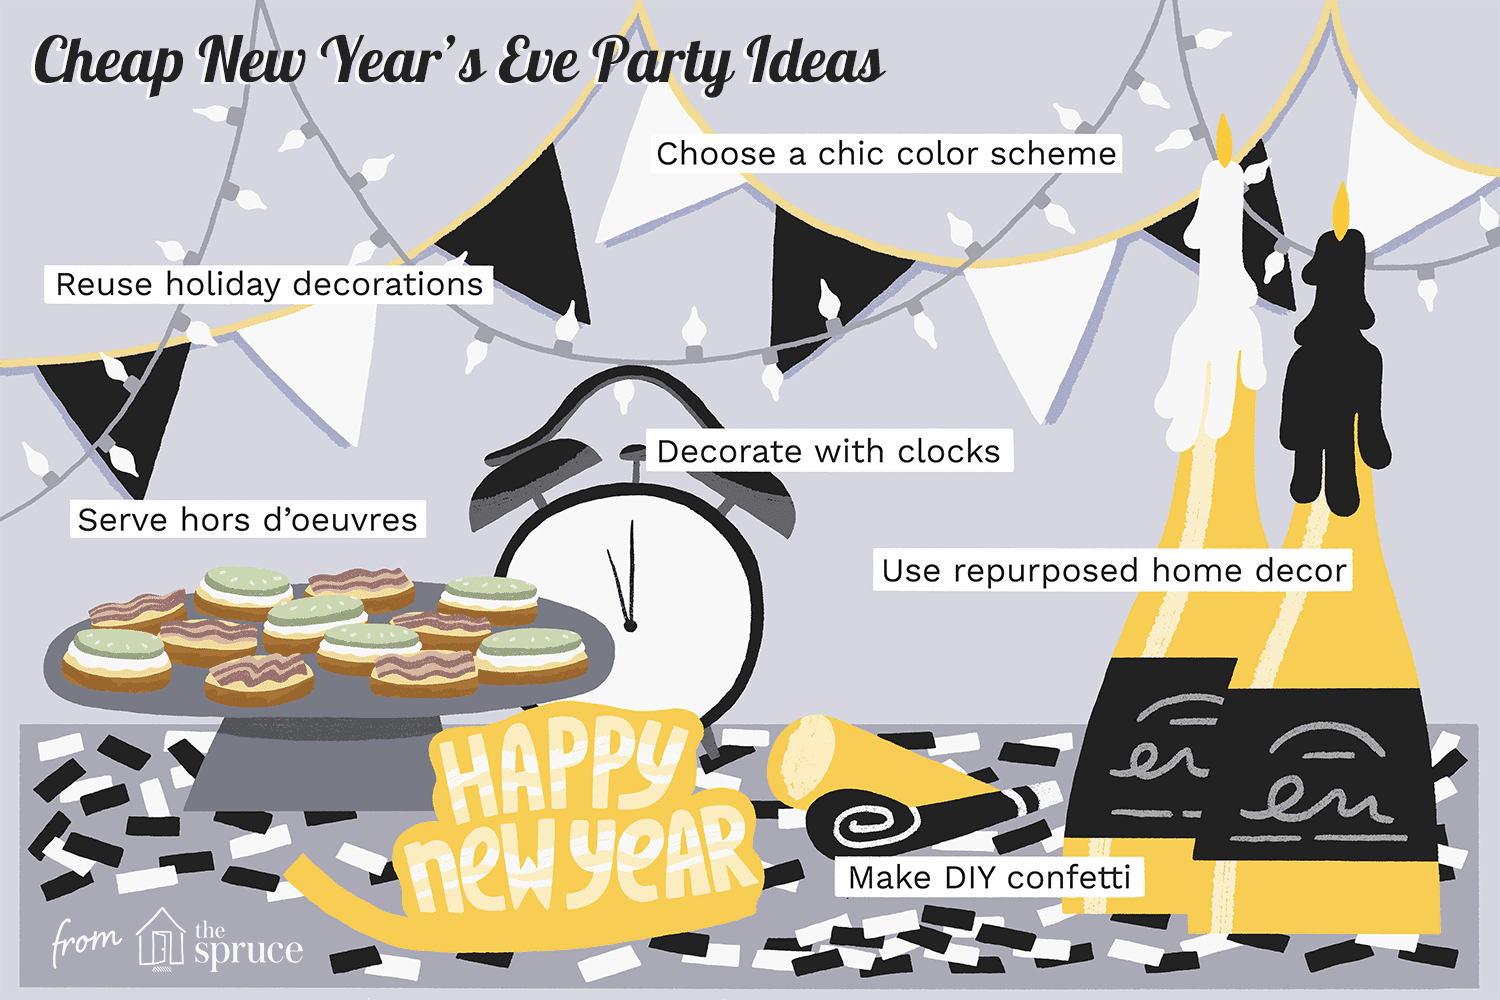 decorating for new years eve party ideas